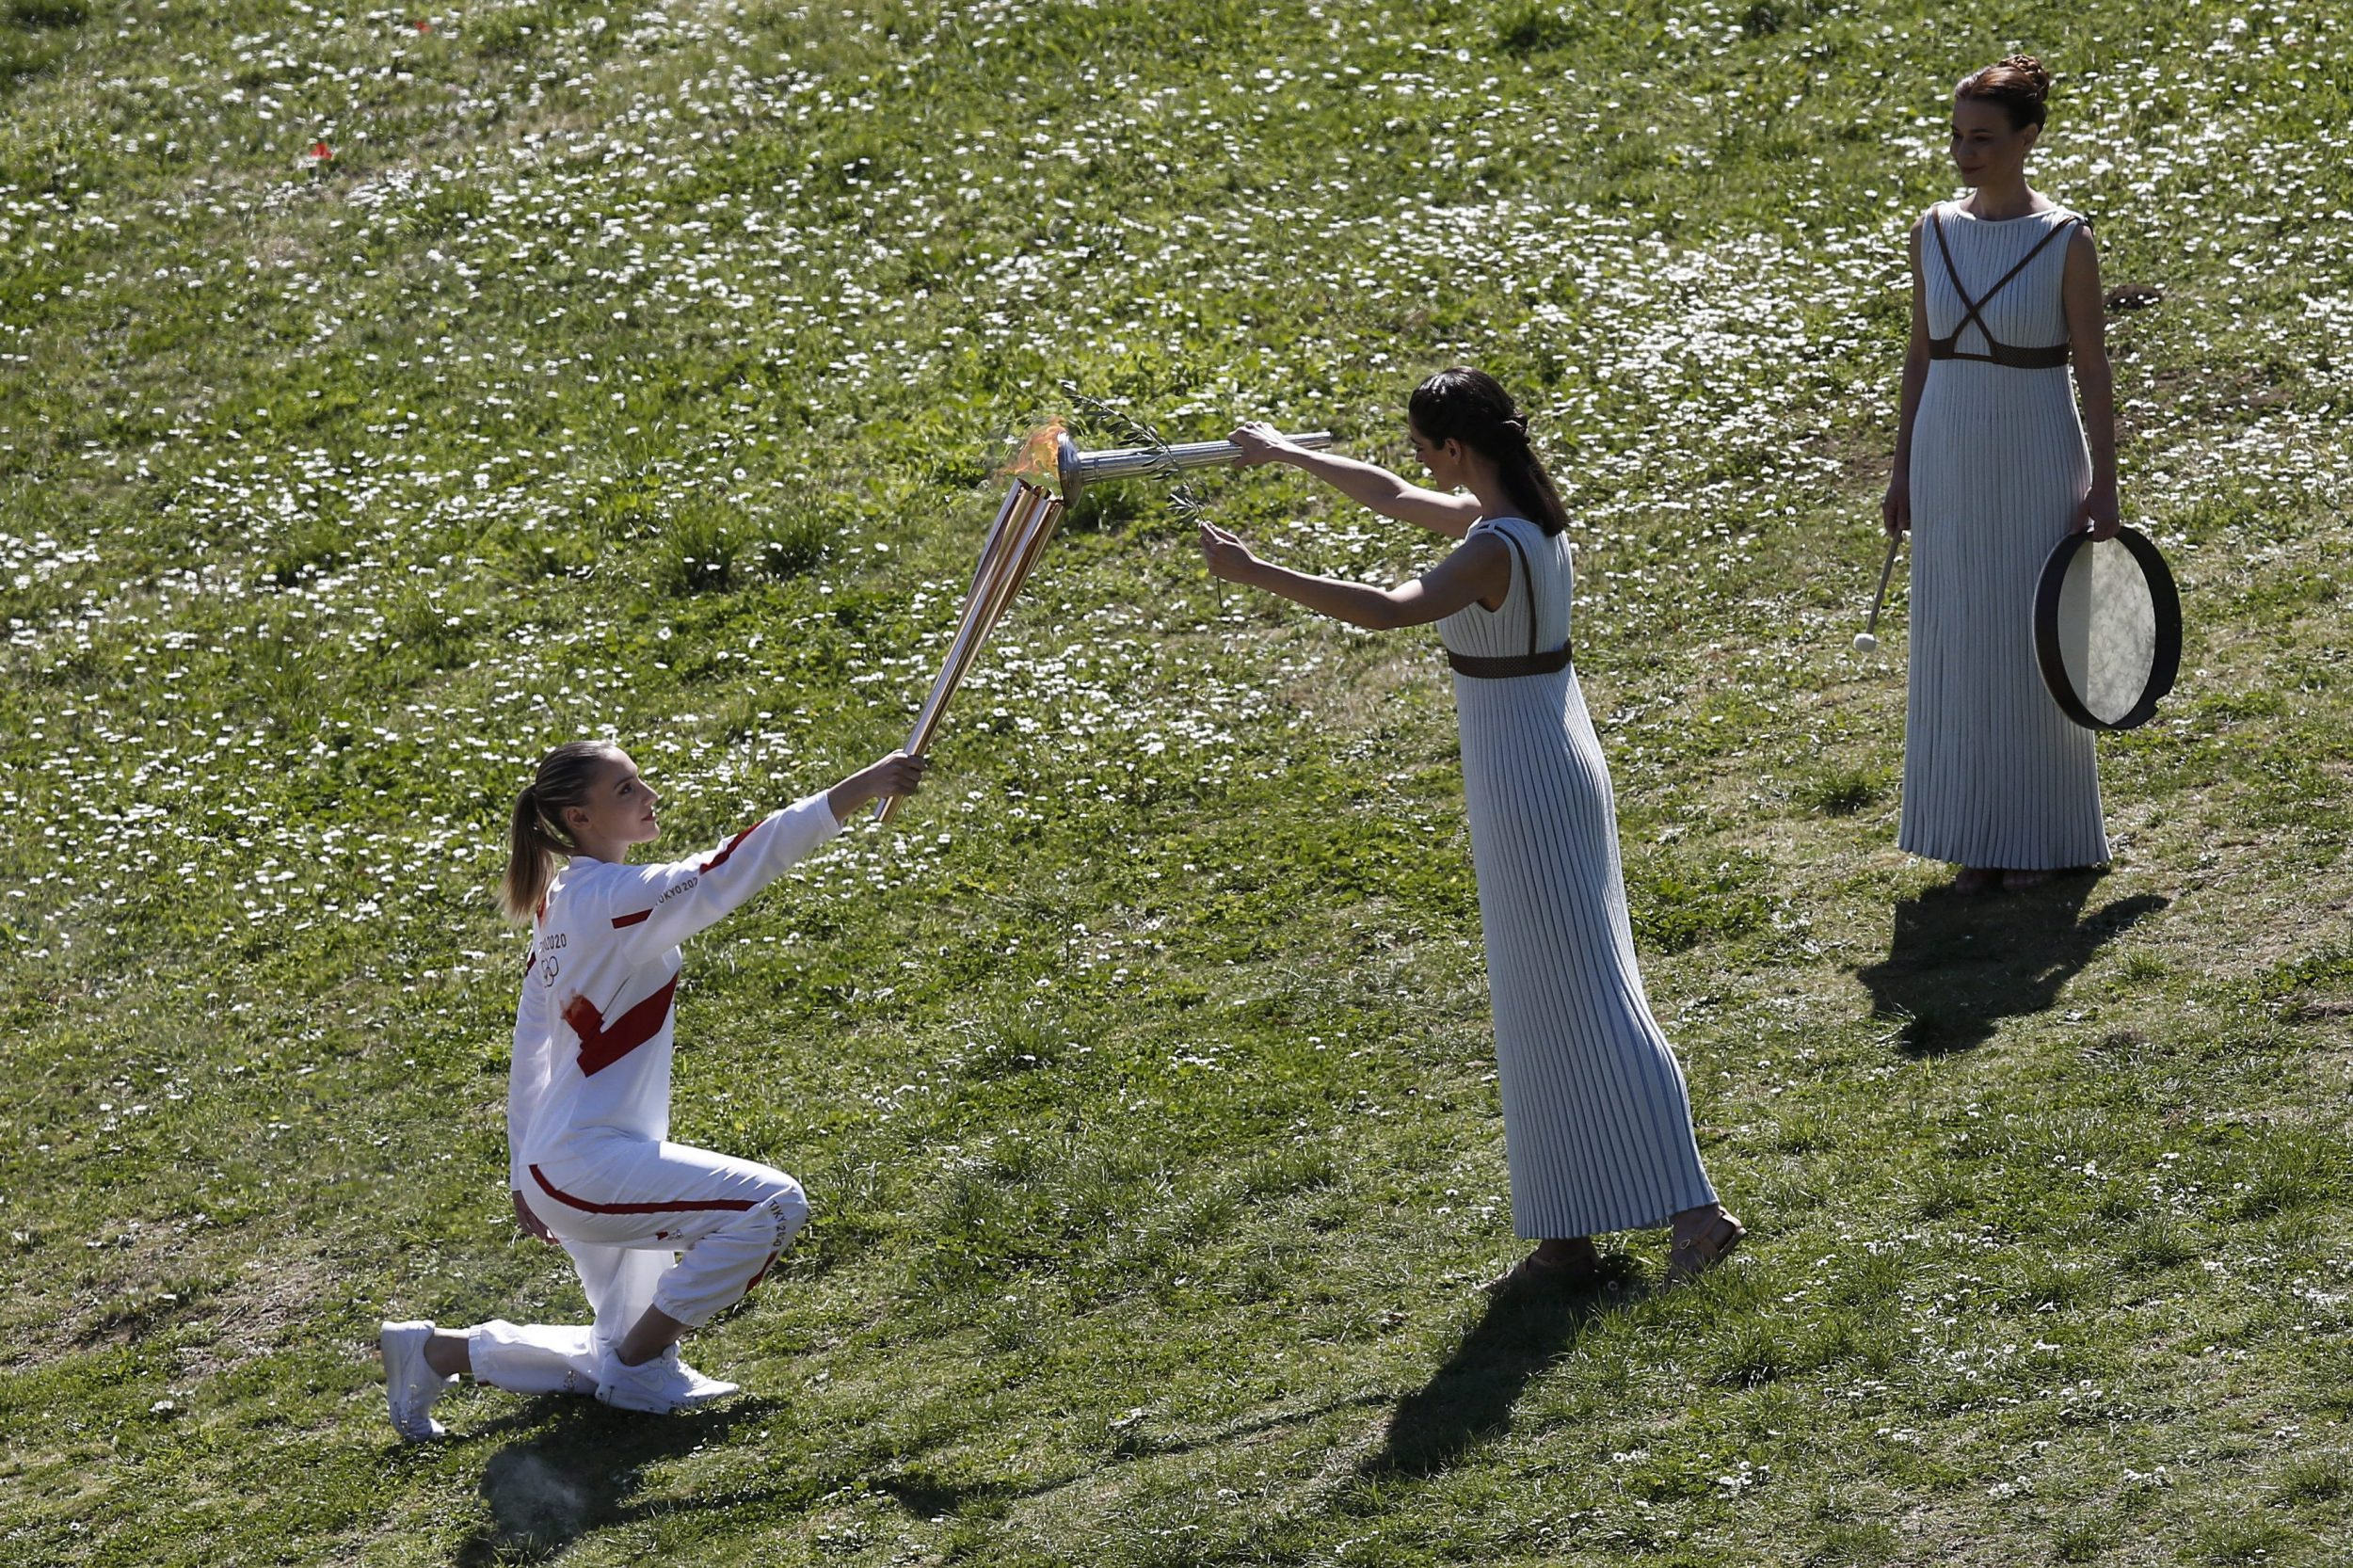 The Olympic flame lights the Tokyo 2020 torch for the first time in Olympia